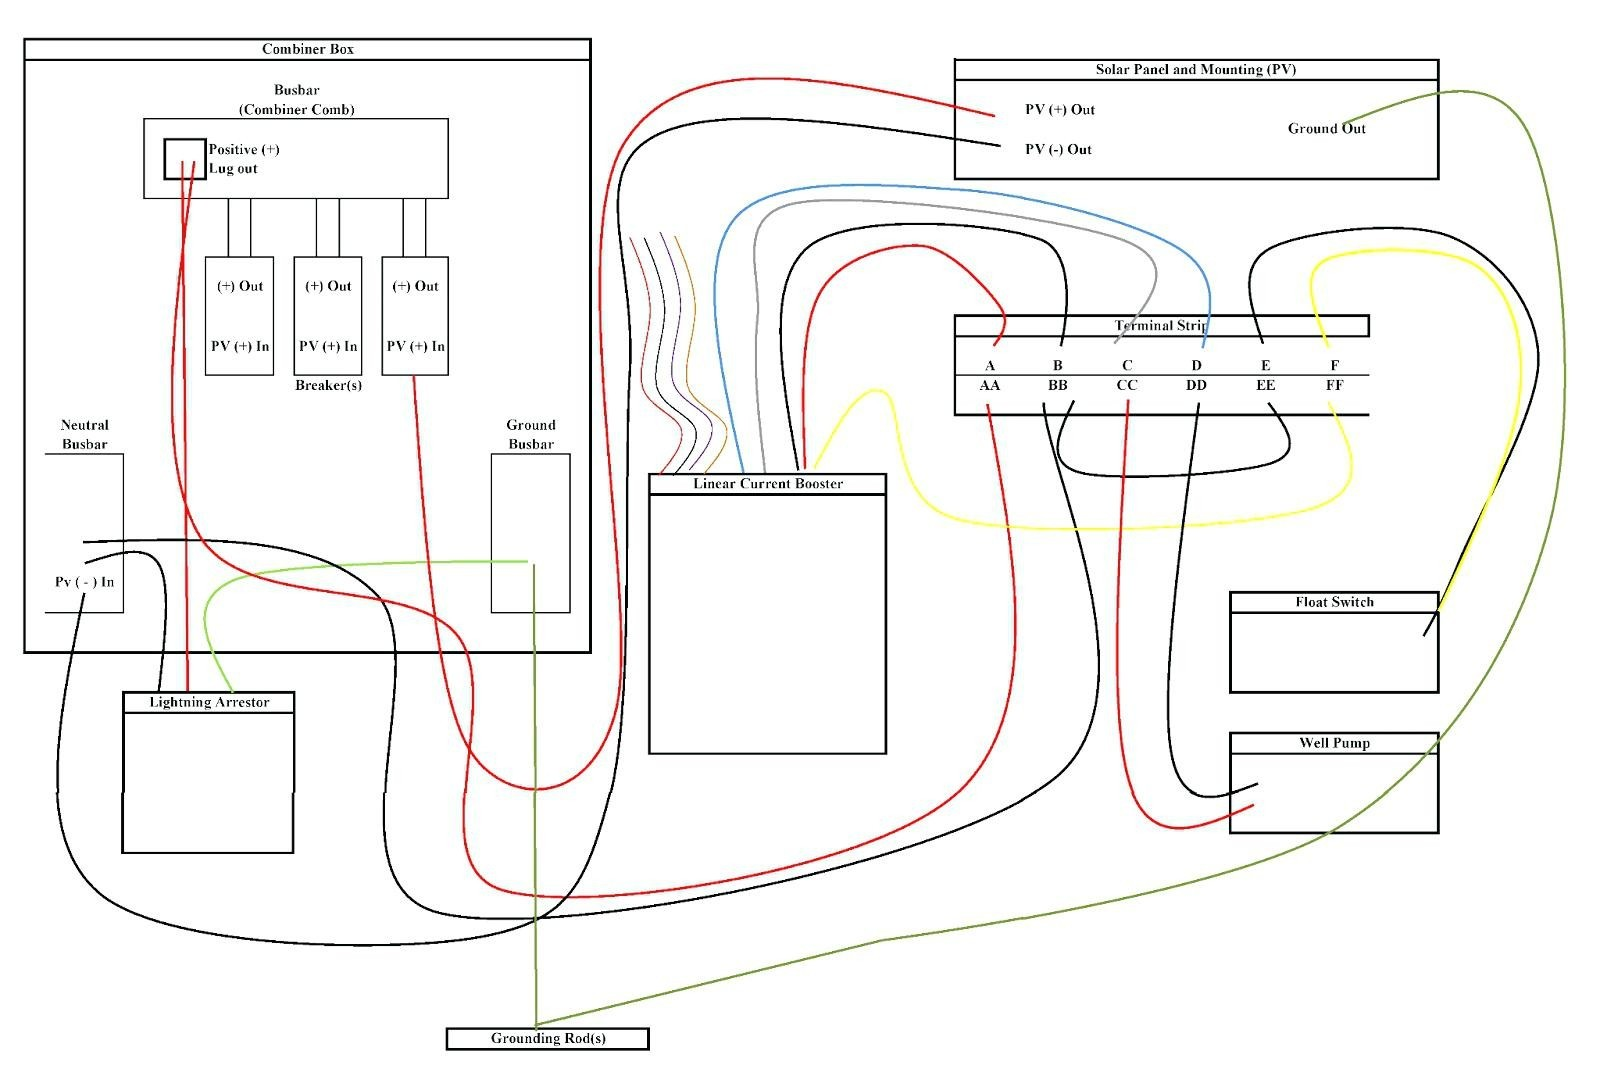 Full Size of 220v Pool Pump Wiring Diagram 4 Wire Well 220 Archived Wiring  Diagram